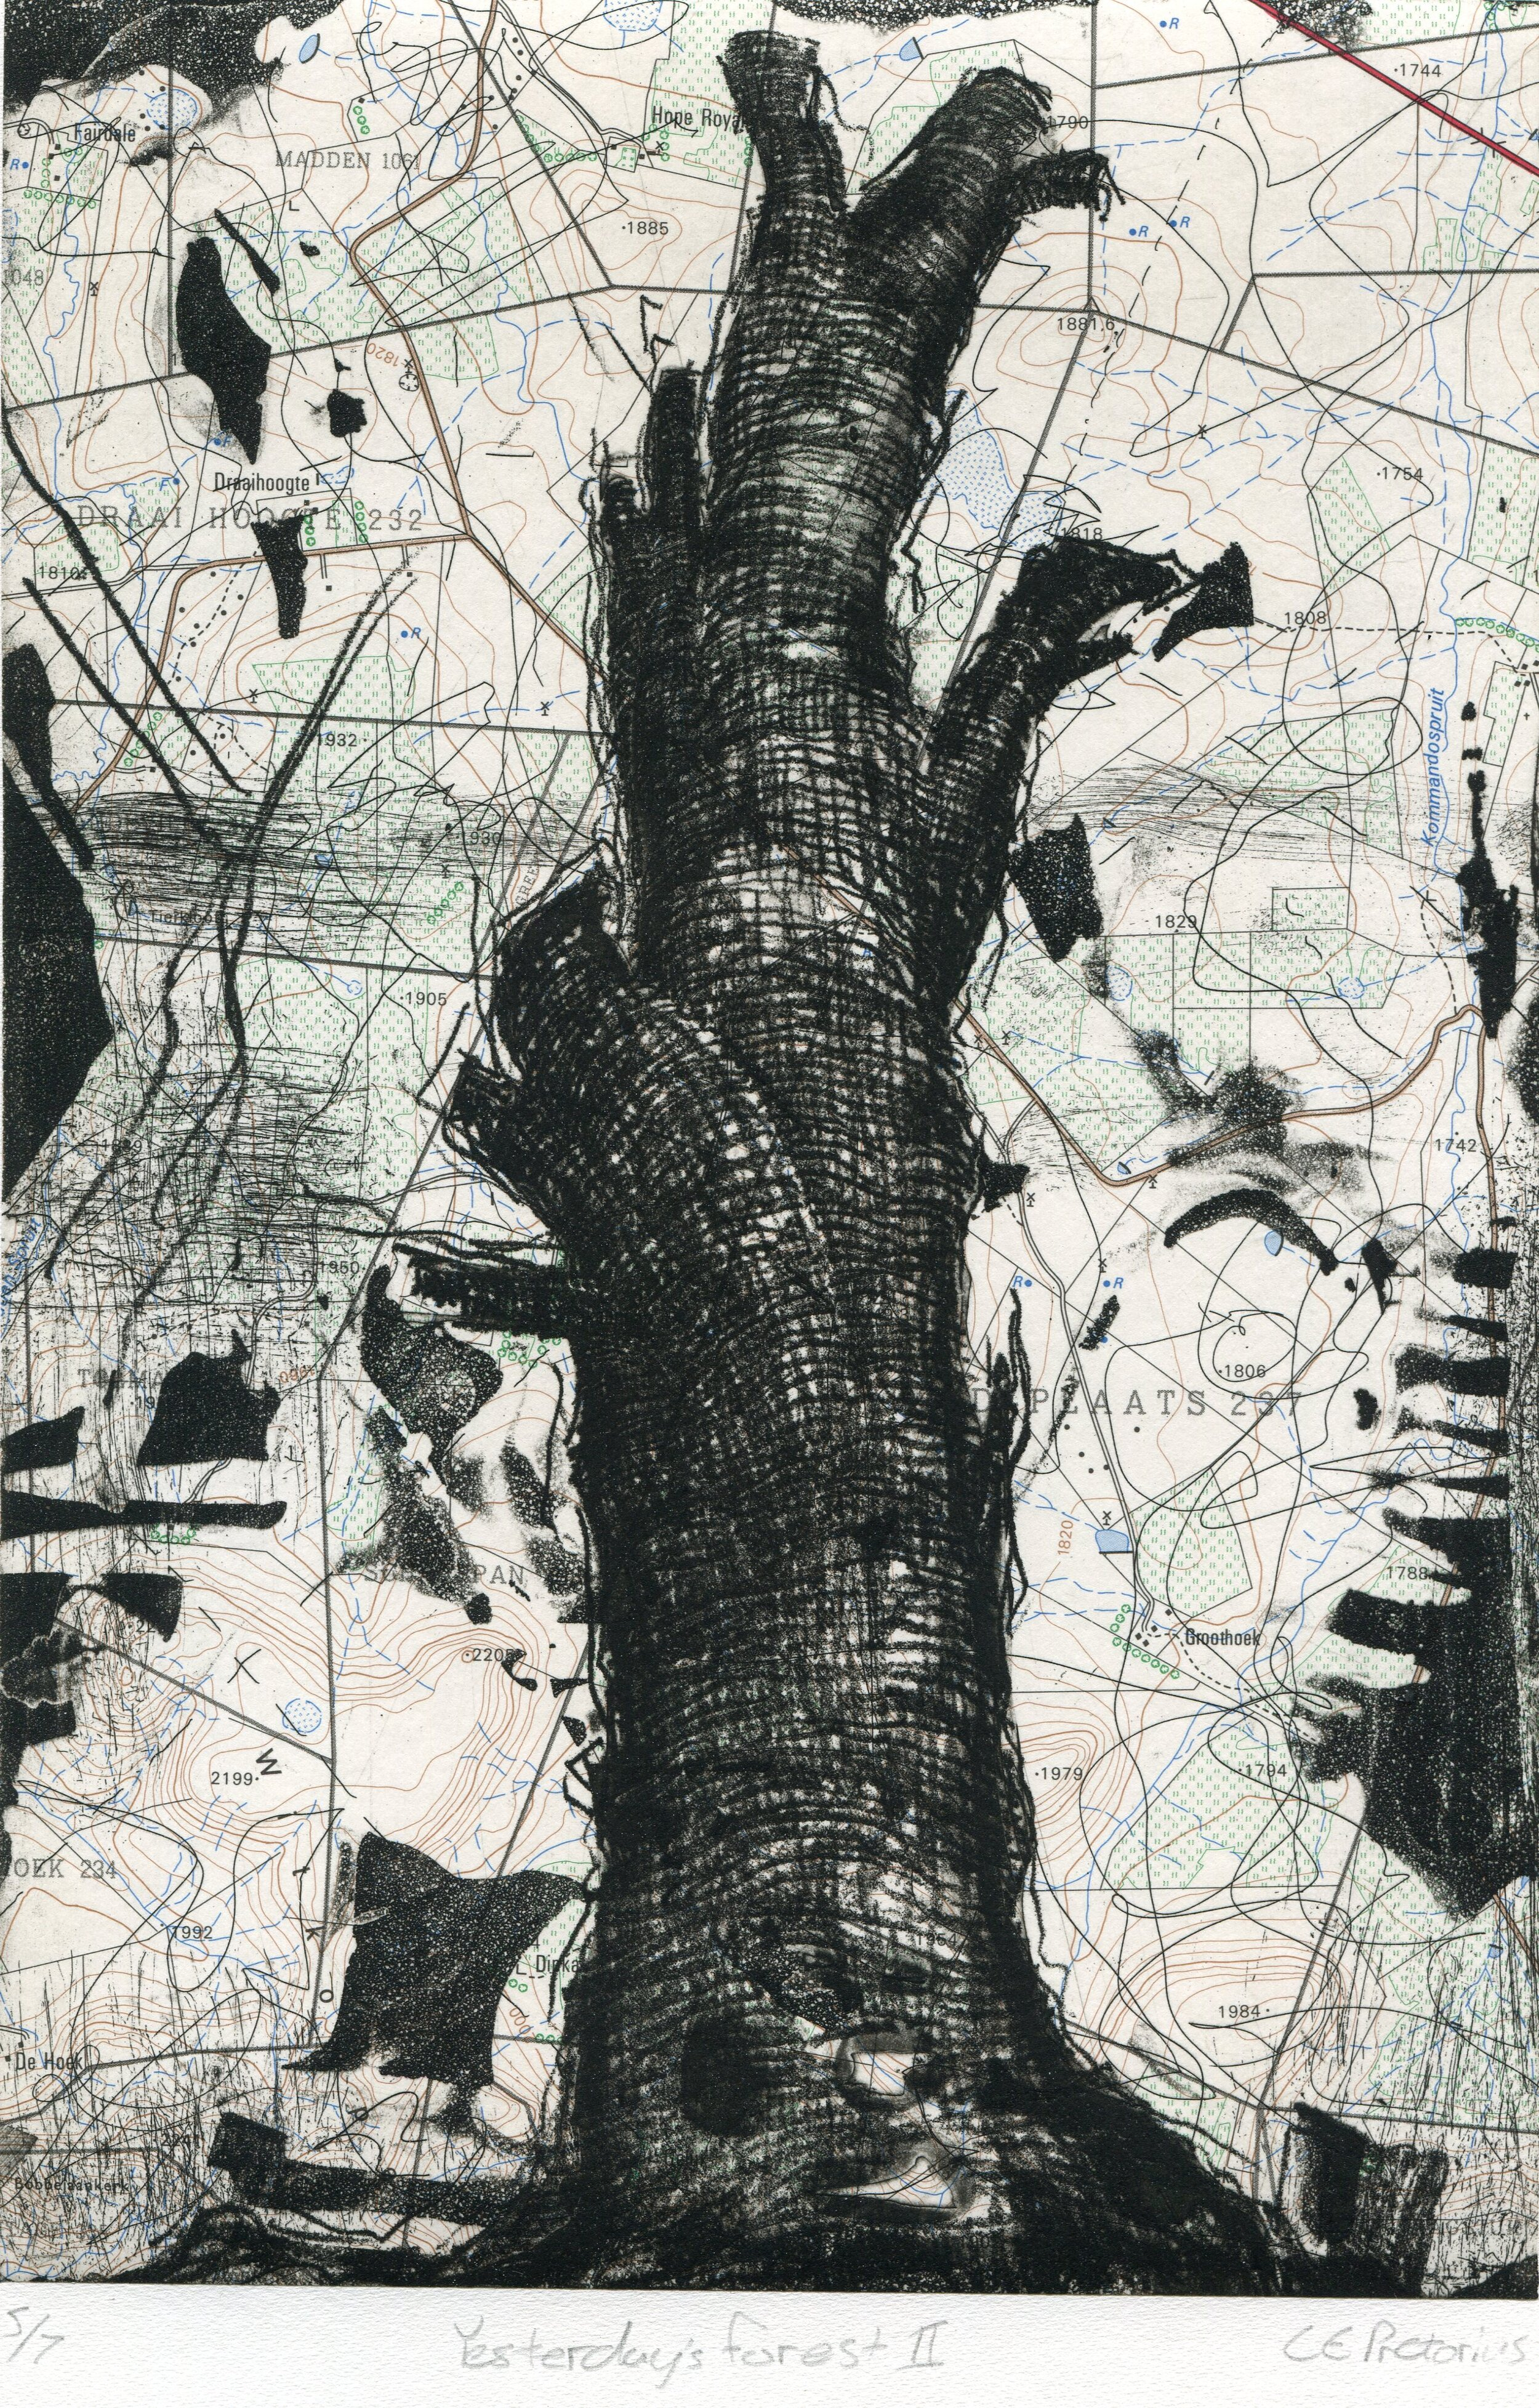 57d  Eloff Pretorius  Yesterday's forest 2  etching and chine-collee on paper